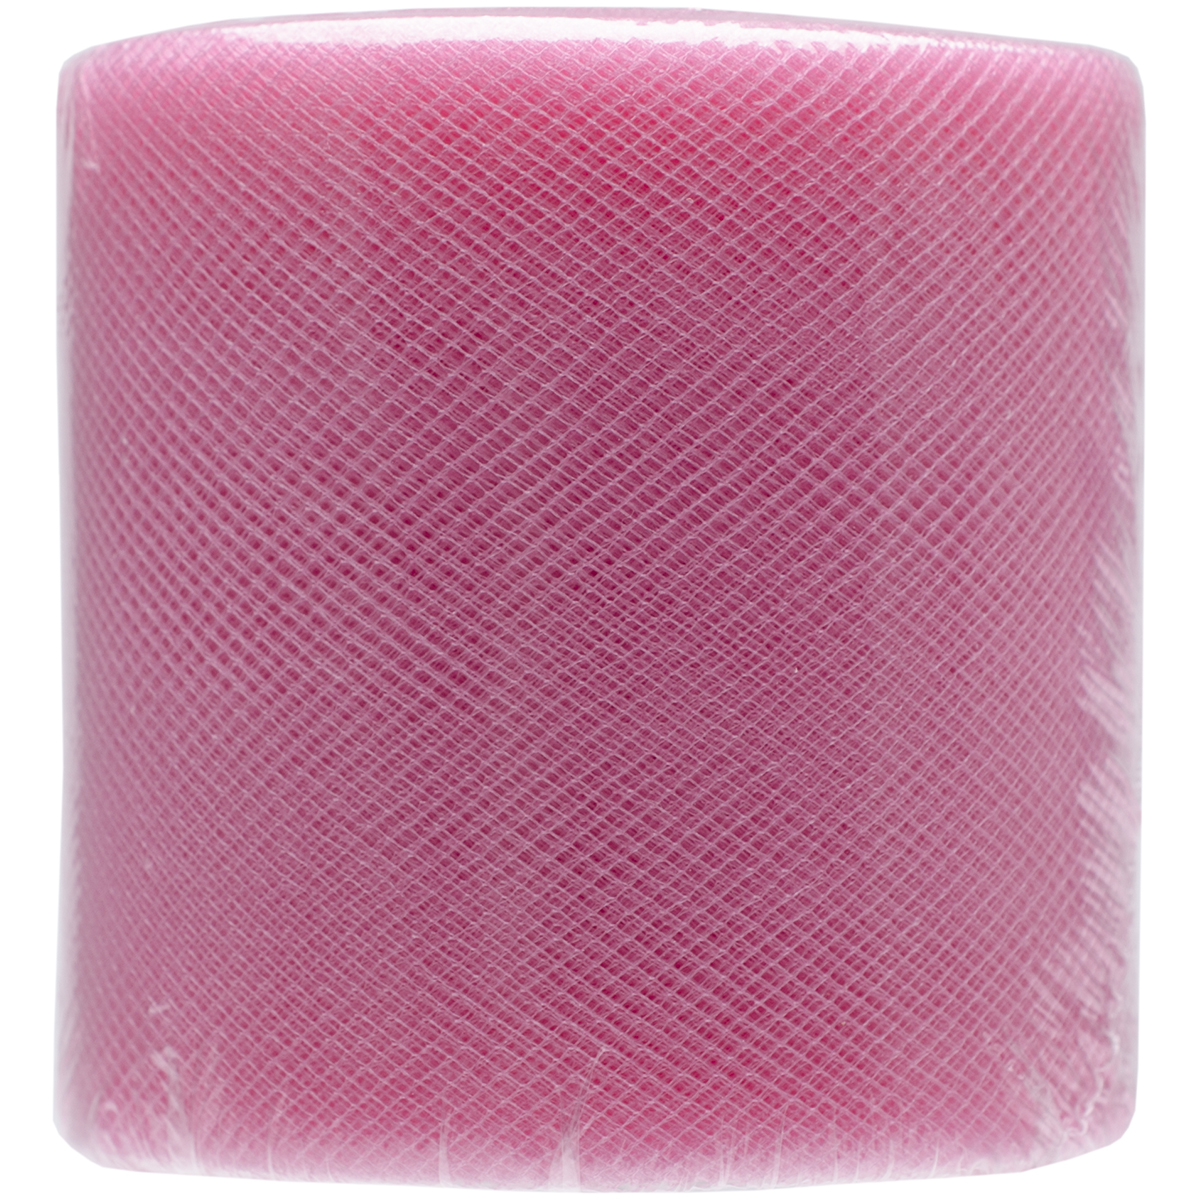 "Falk Diamond Net Mesh Spool 3"" Wide 25yd-Paris Pink"